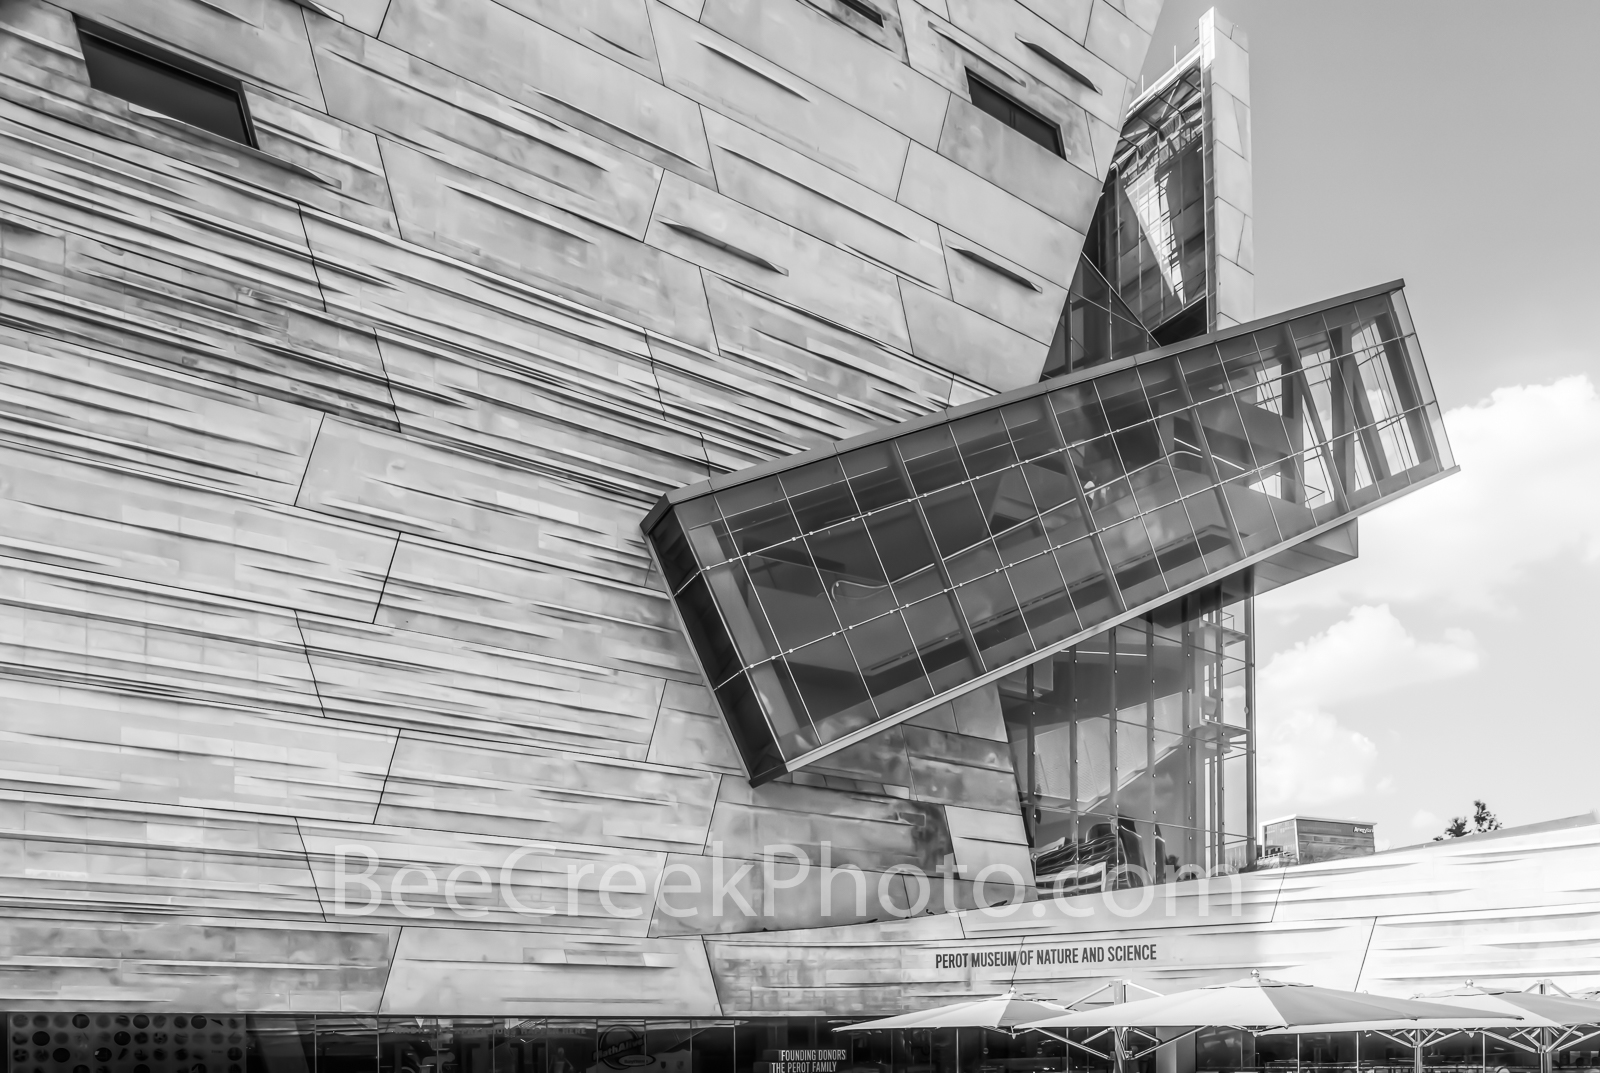 dallas, downtown dallas, architecture, perot museum of nature and science, museum, ross perot, landmark, downtown dallas, urban, landscape, iconic, museum, city of dallas, dfw, picture of dallas, dall, photo